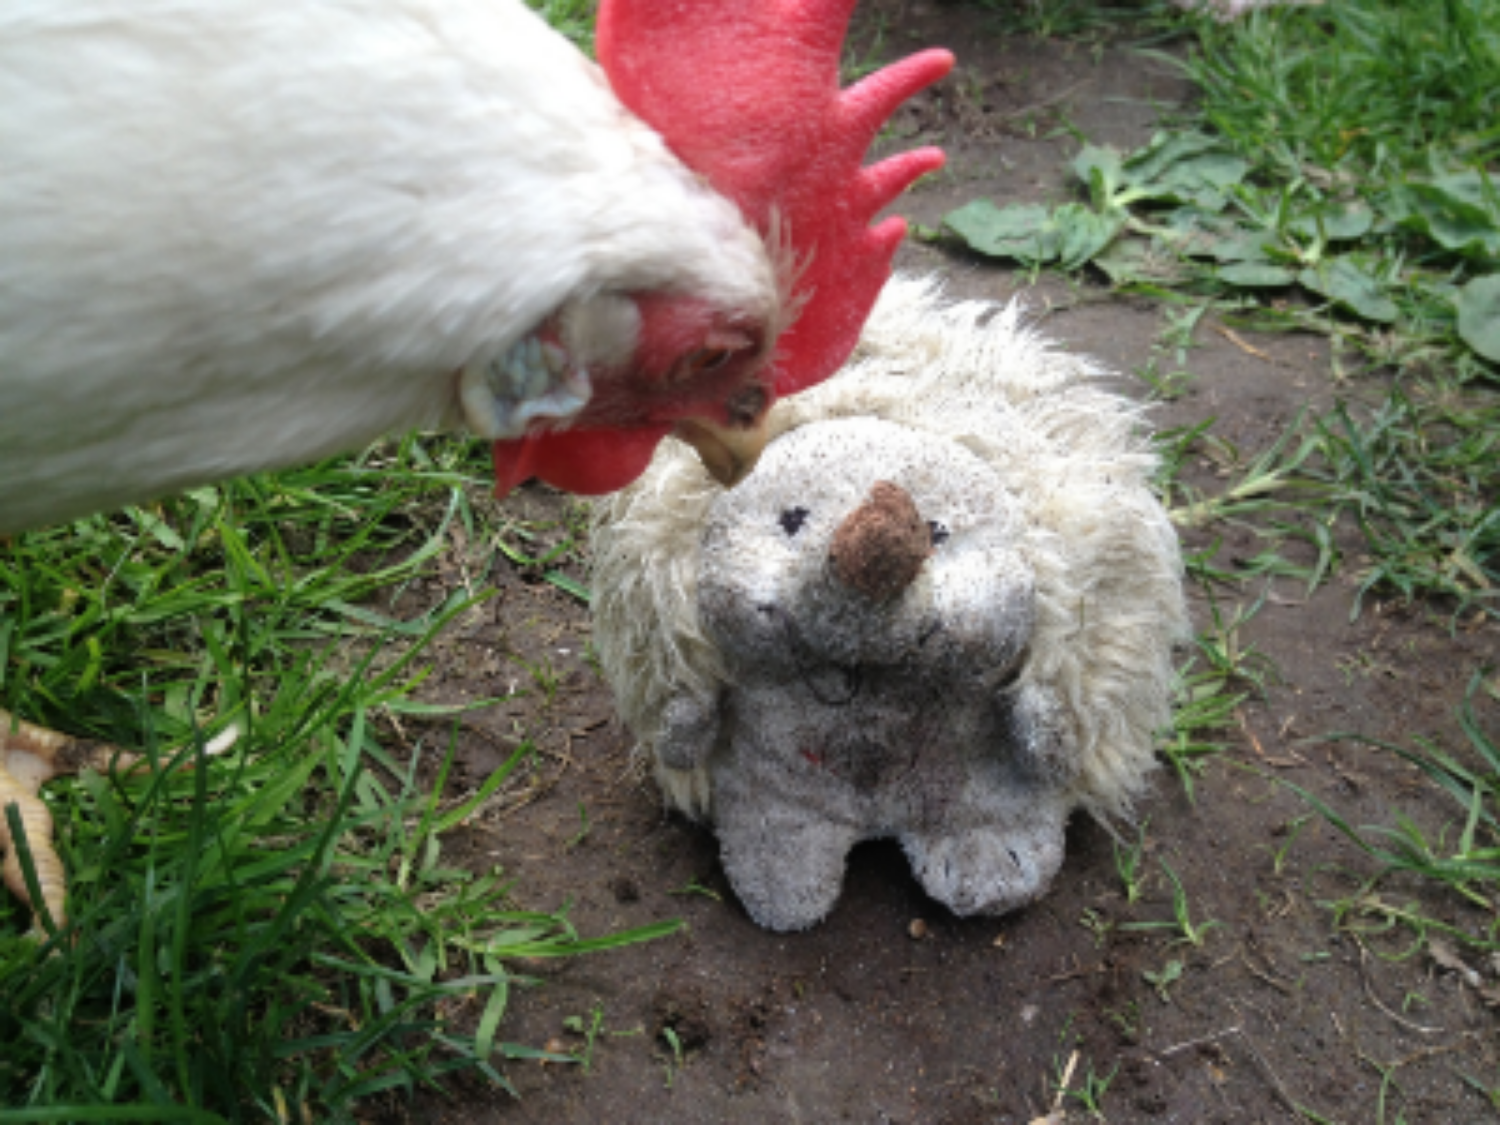 This is my late hen, Alice, passing on dangerous secrets to Hedgehog, shortly before being eaten by the bandit, Racoon.